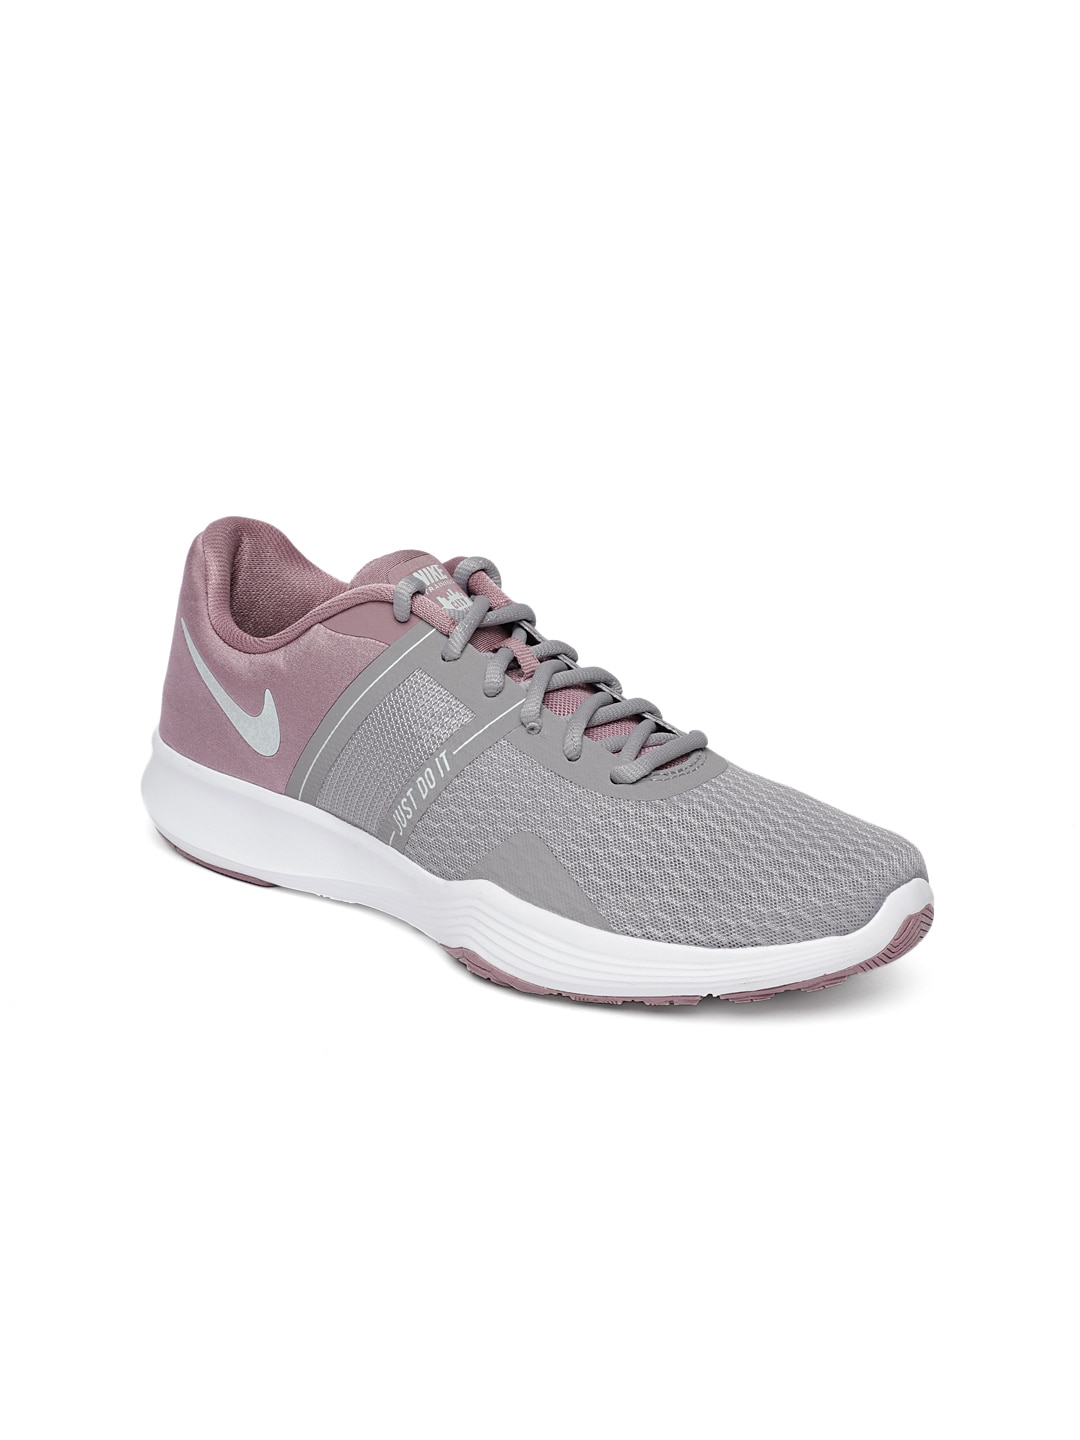 huge selection of 718ed c8f1a Nike Sport Shoe - Buy Nike Sport Shoes At Best Price Online